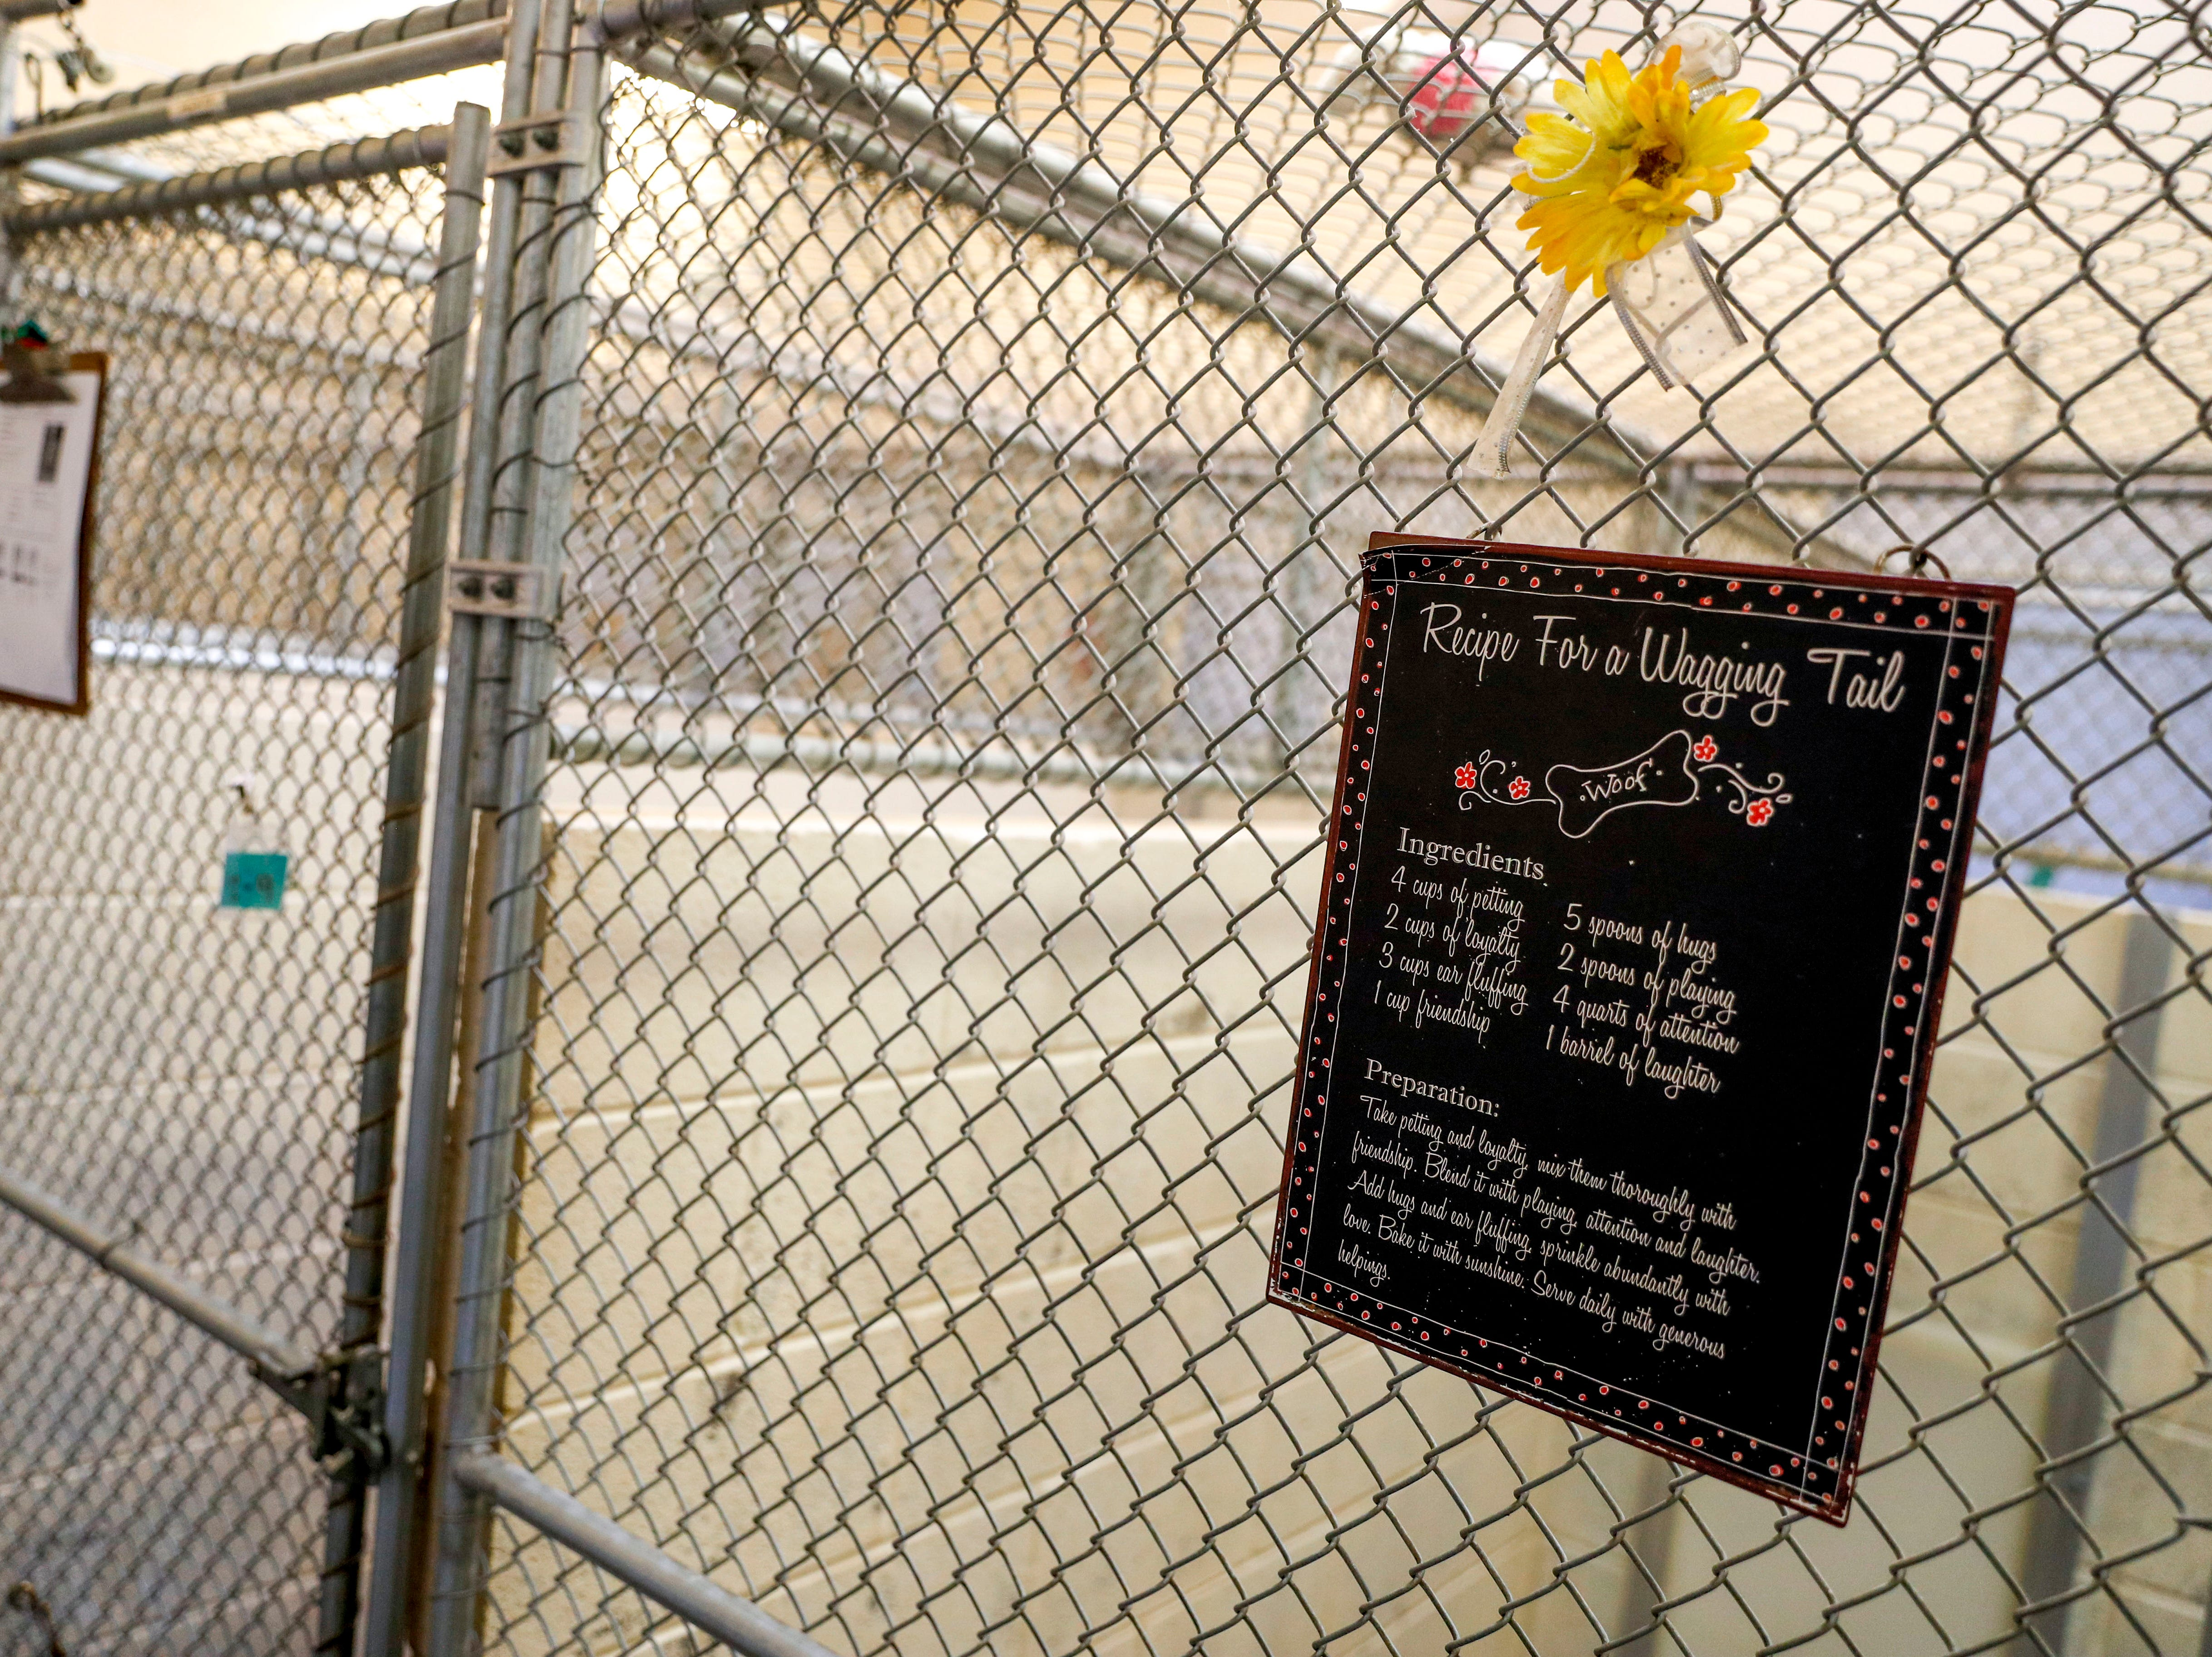 A sign reminds visitors of tips and instructions about how to keep dogs happy and care for them during visits at Montgomery County Animal Care and Control in Clarksville, Tenn., on Wednesday, March 13, 2019.